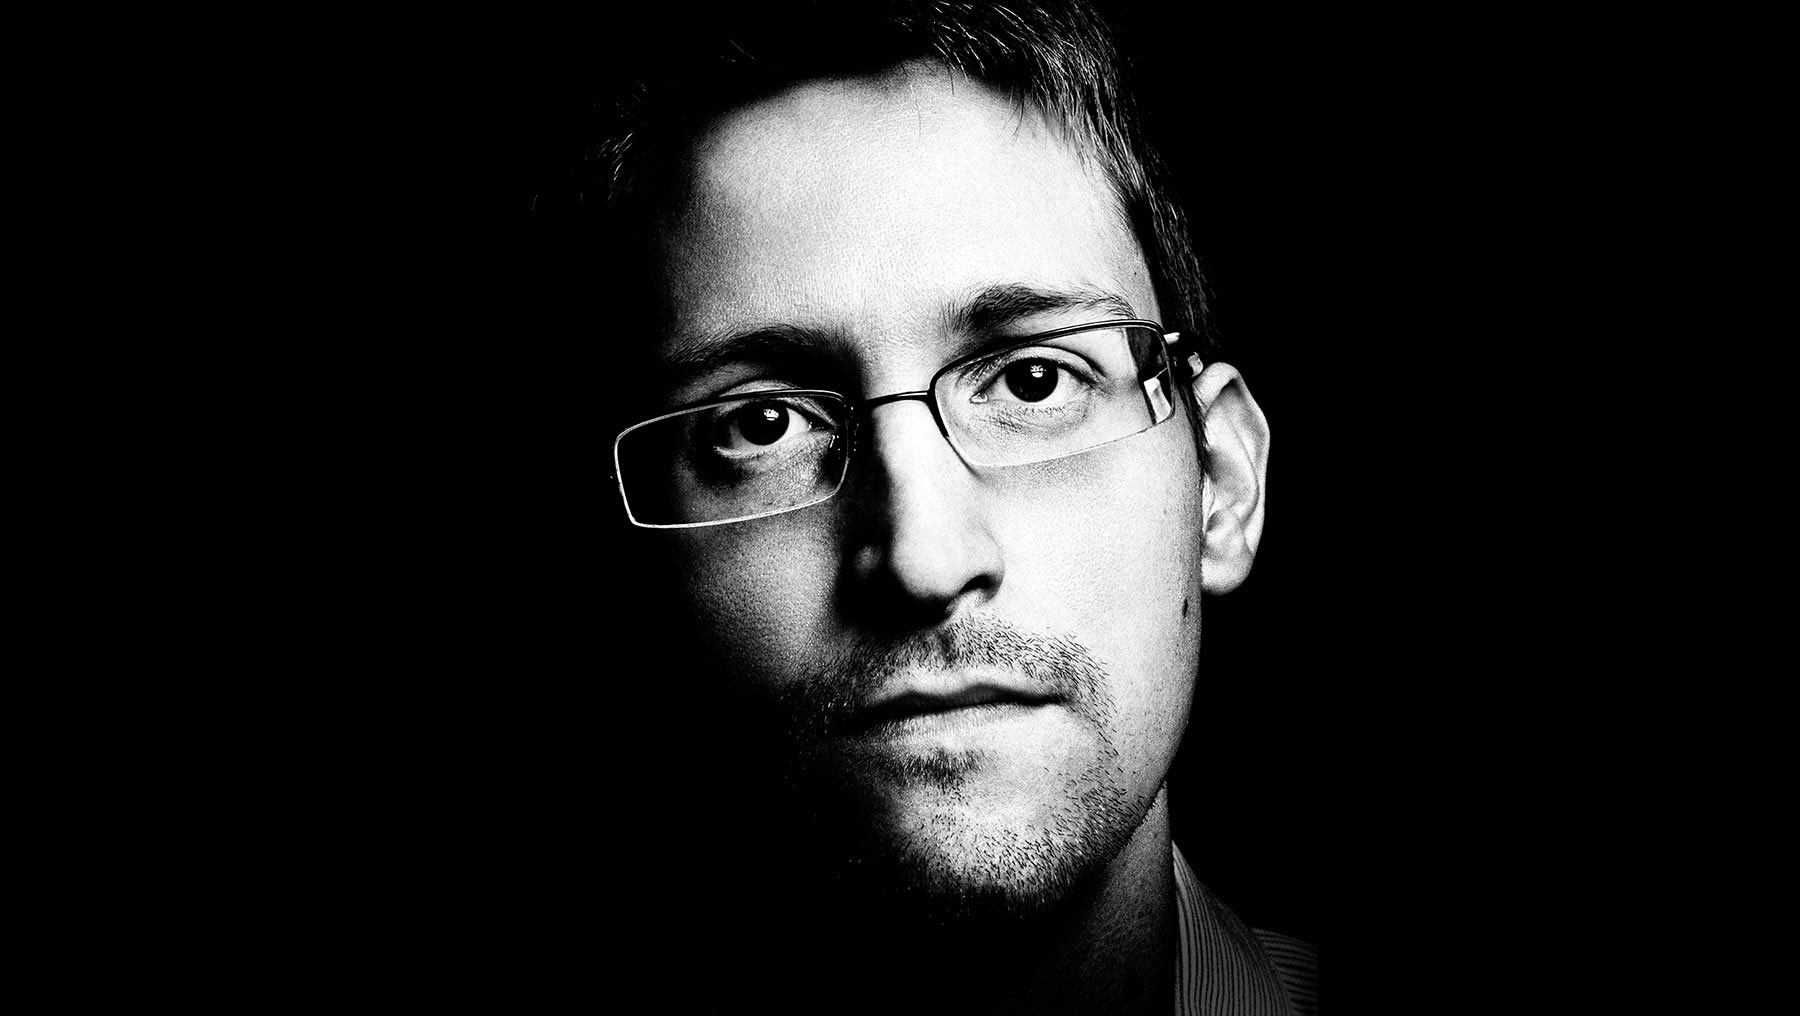 Portrait du véritable Edward Snowden (image : wired.com)